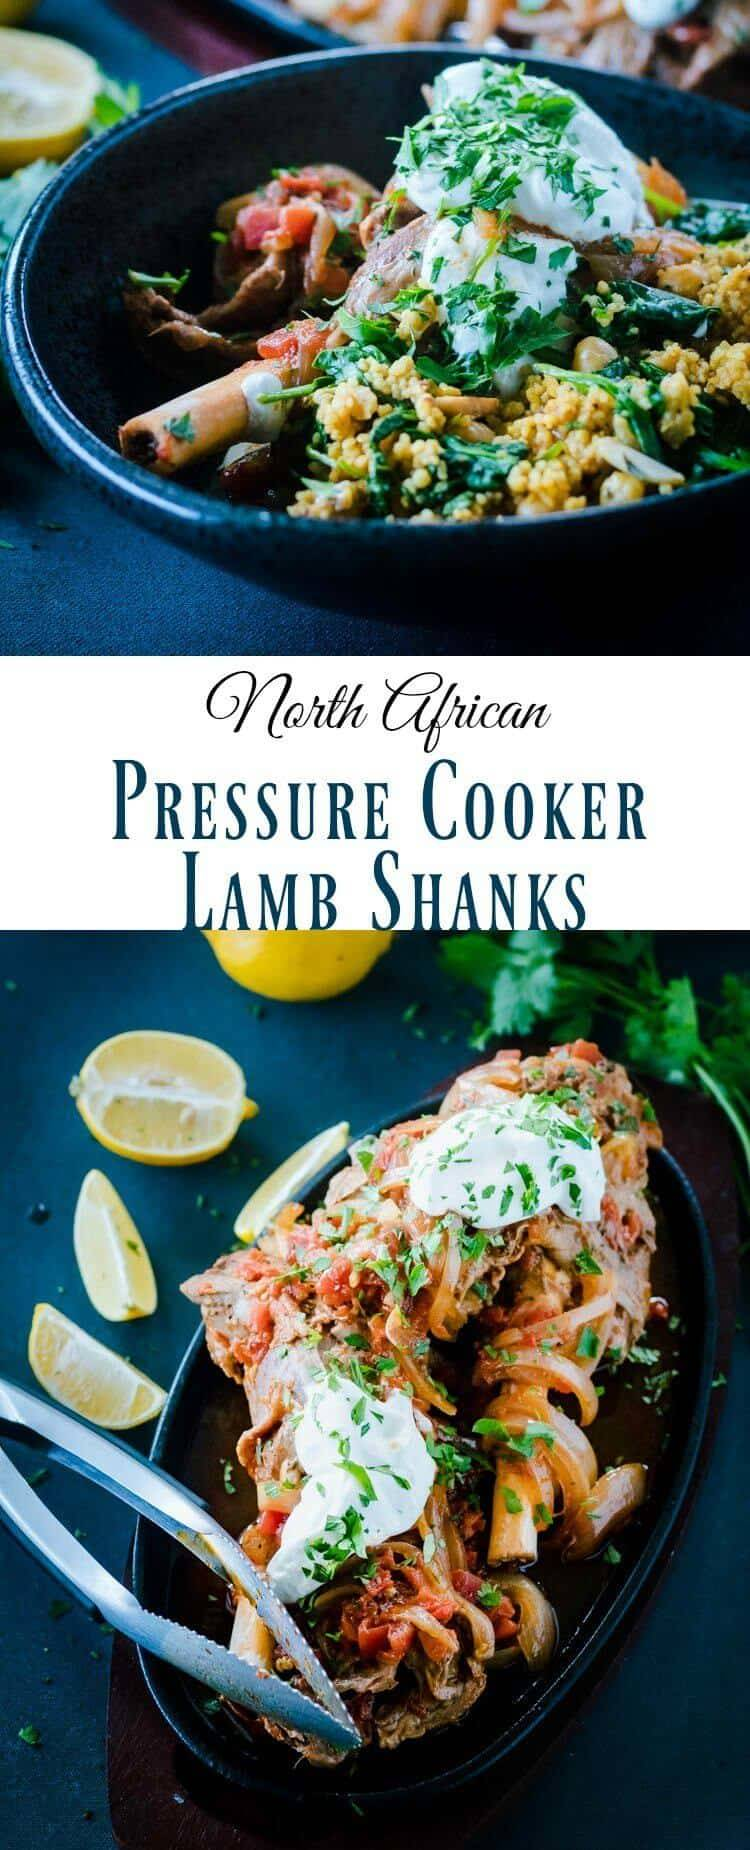 North African Pressure Cooker Lamb Shanks Pin - Bold North African flavors sing in this substantial lamb dish... North African Pressure Cooker Lamb Shanks has slow-cooked tenderness and flavor with the aid of your pressure cooker! Serve with simple or adorned couscous... #pressurecooker #instantpot #lambshanks #moroccanfood